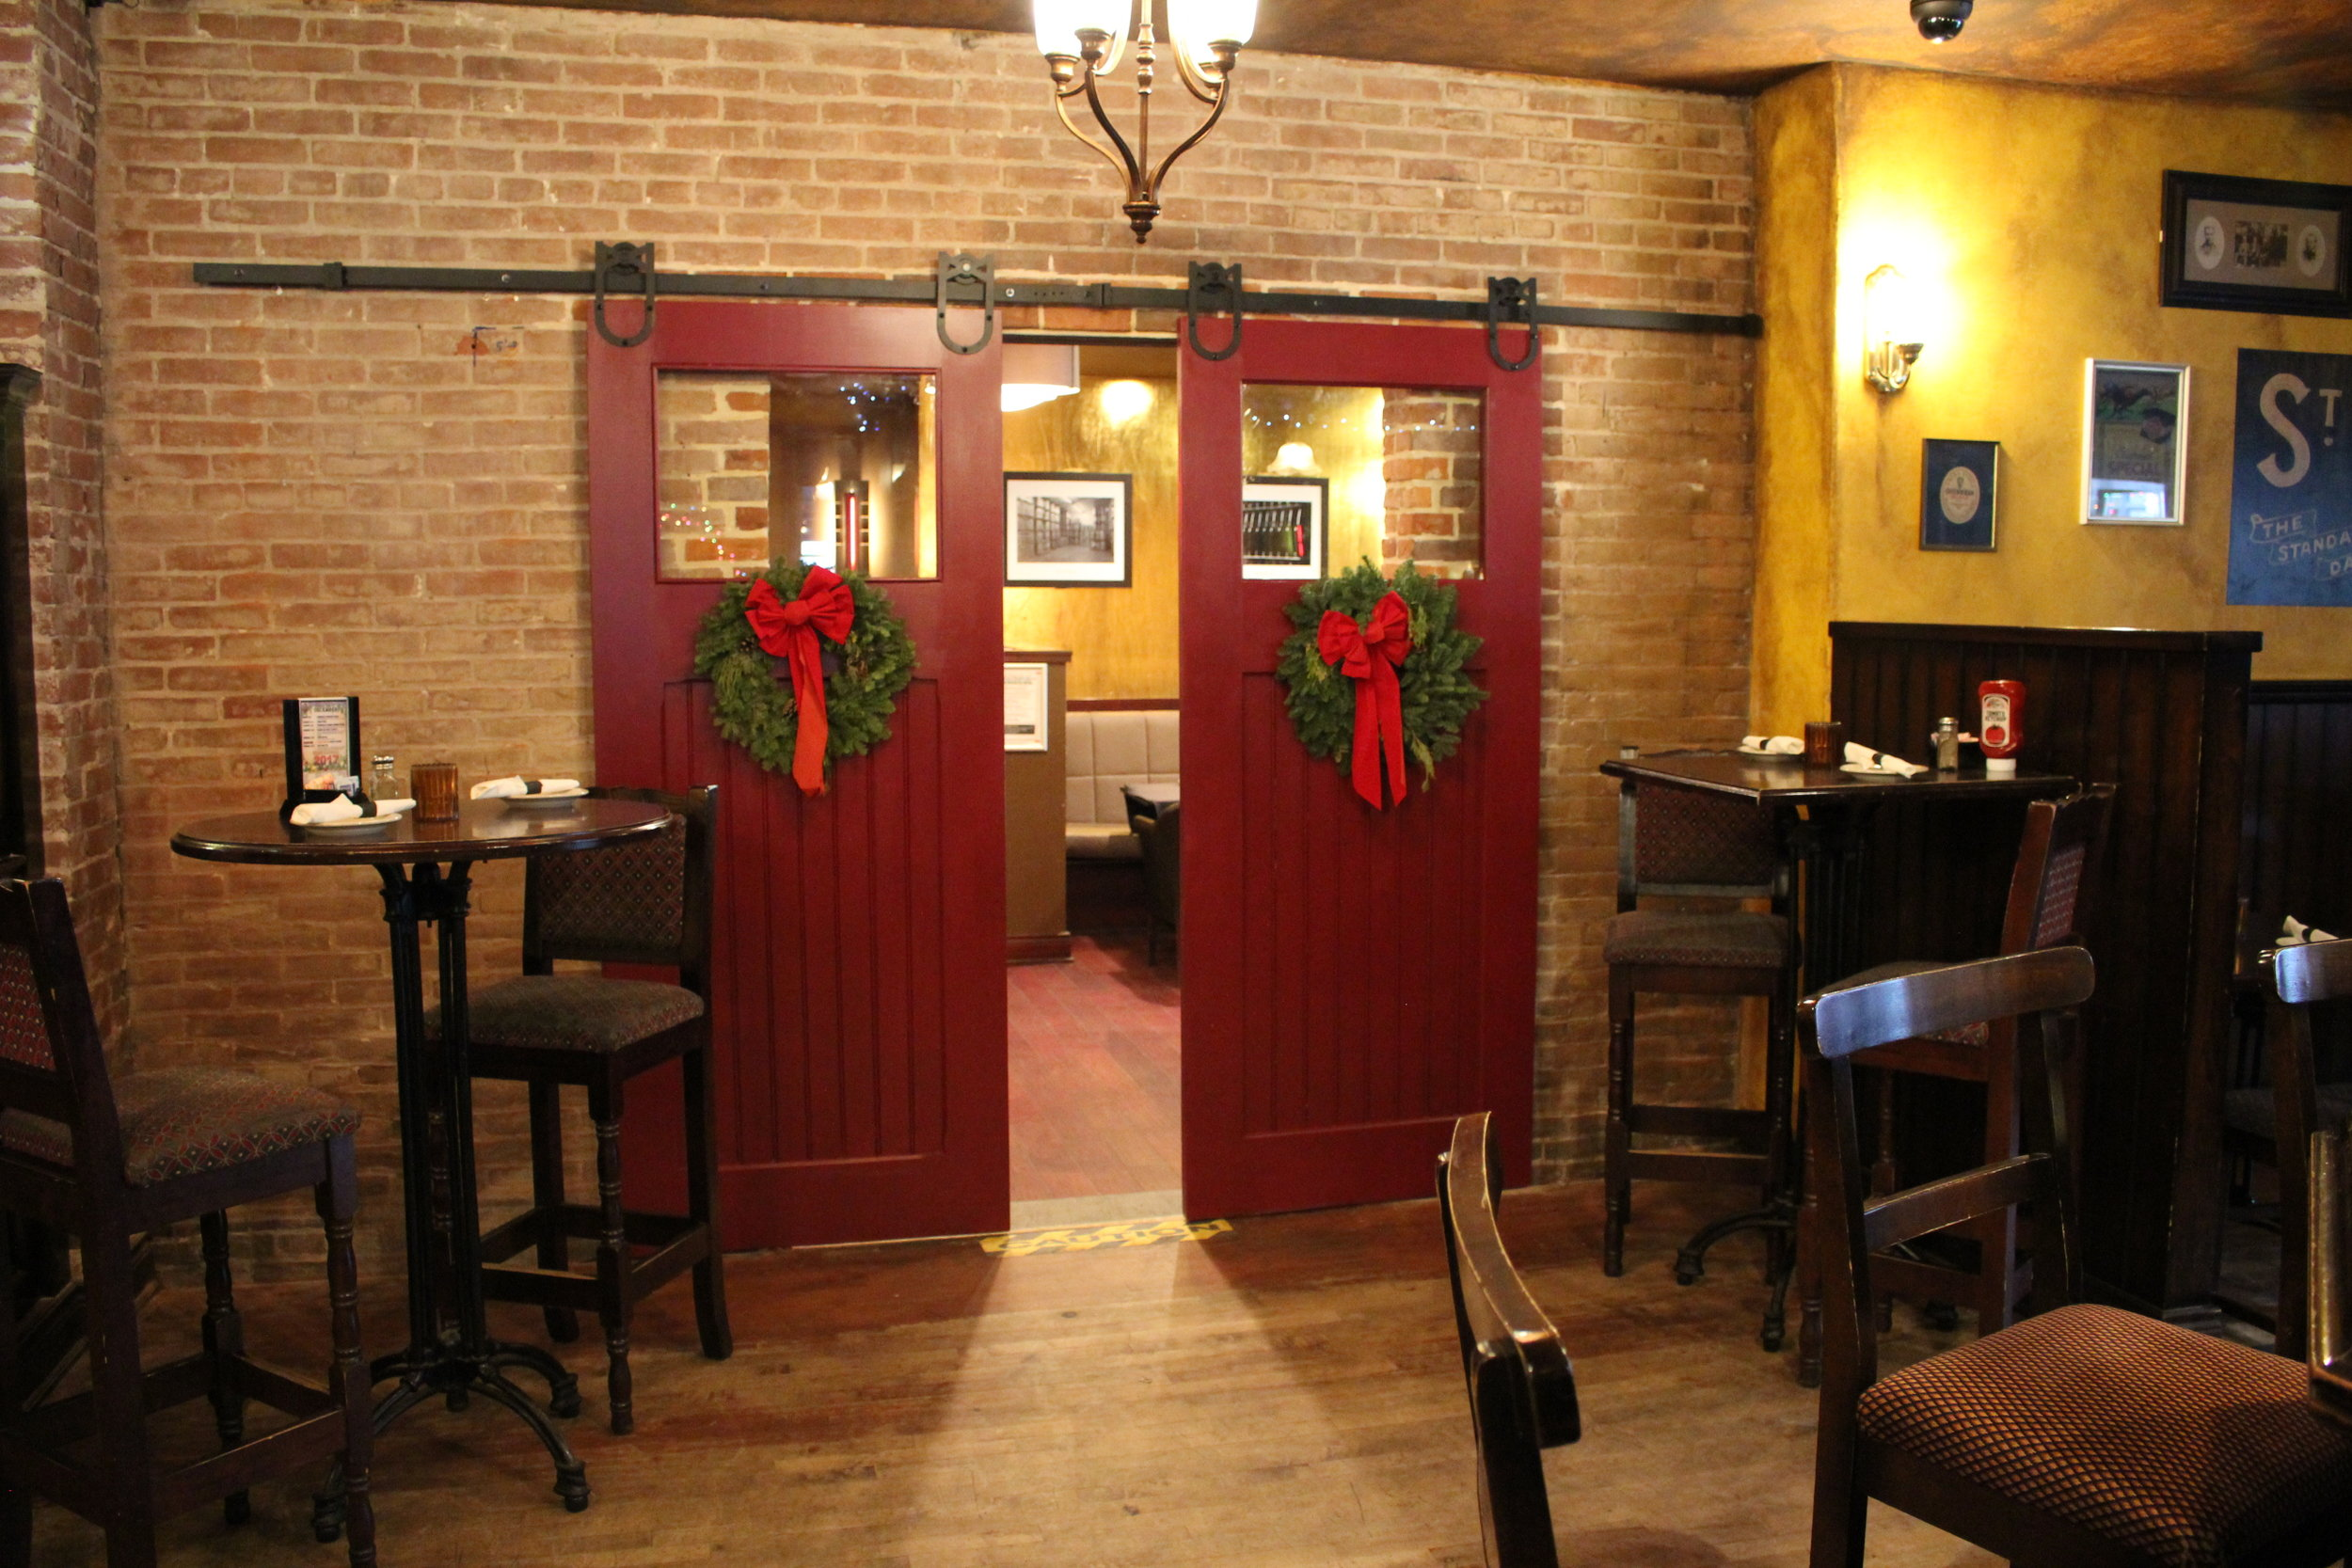 Entrance to the fenix room showing red wooden doors with wreaths